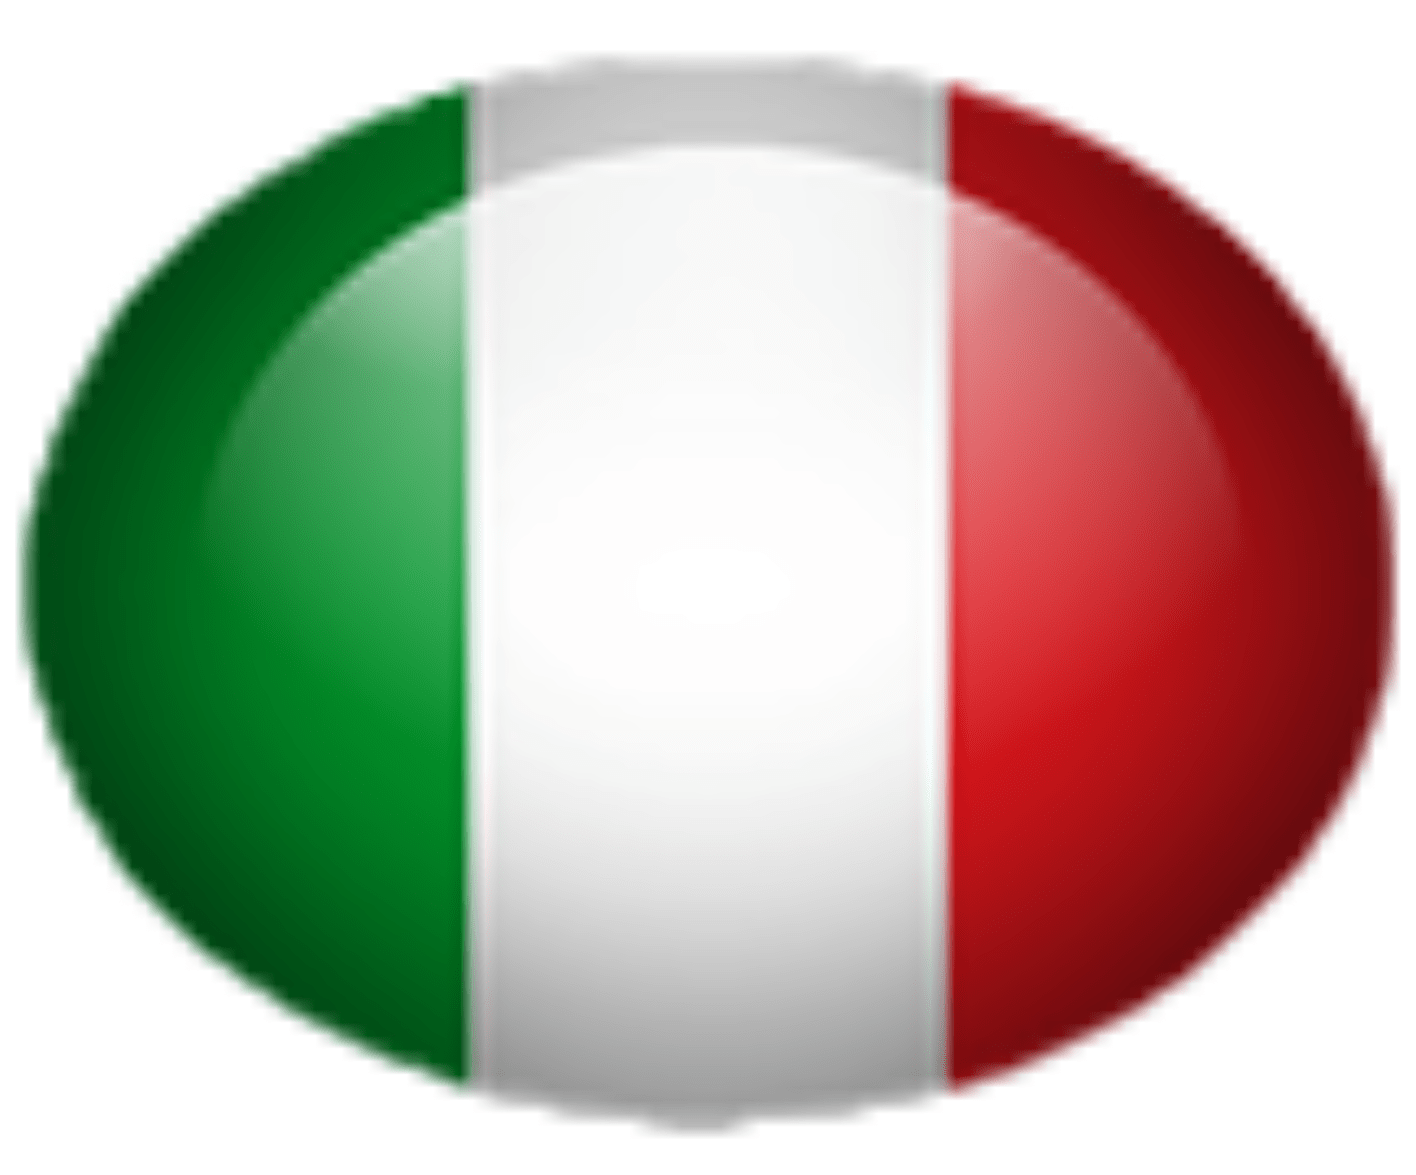 Traduction du mod Mod d'Allocation en Italien